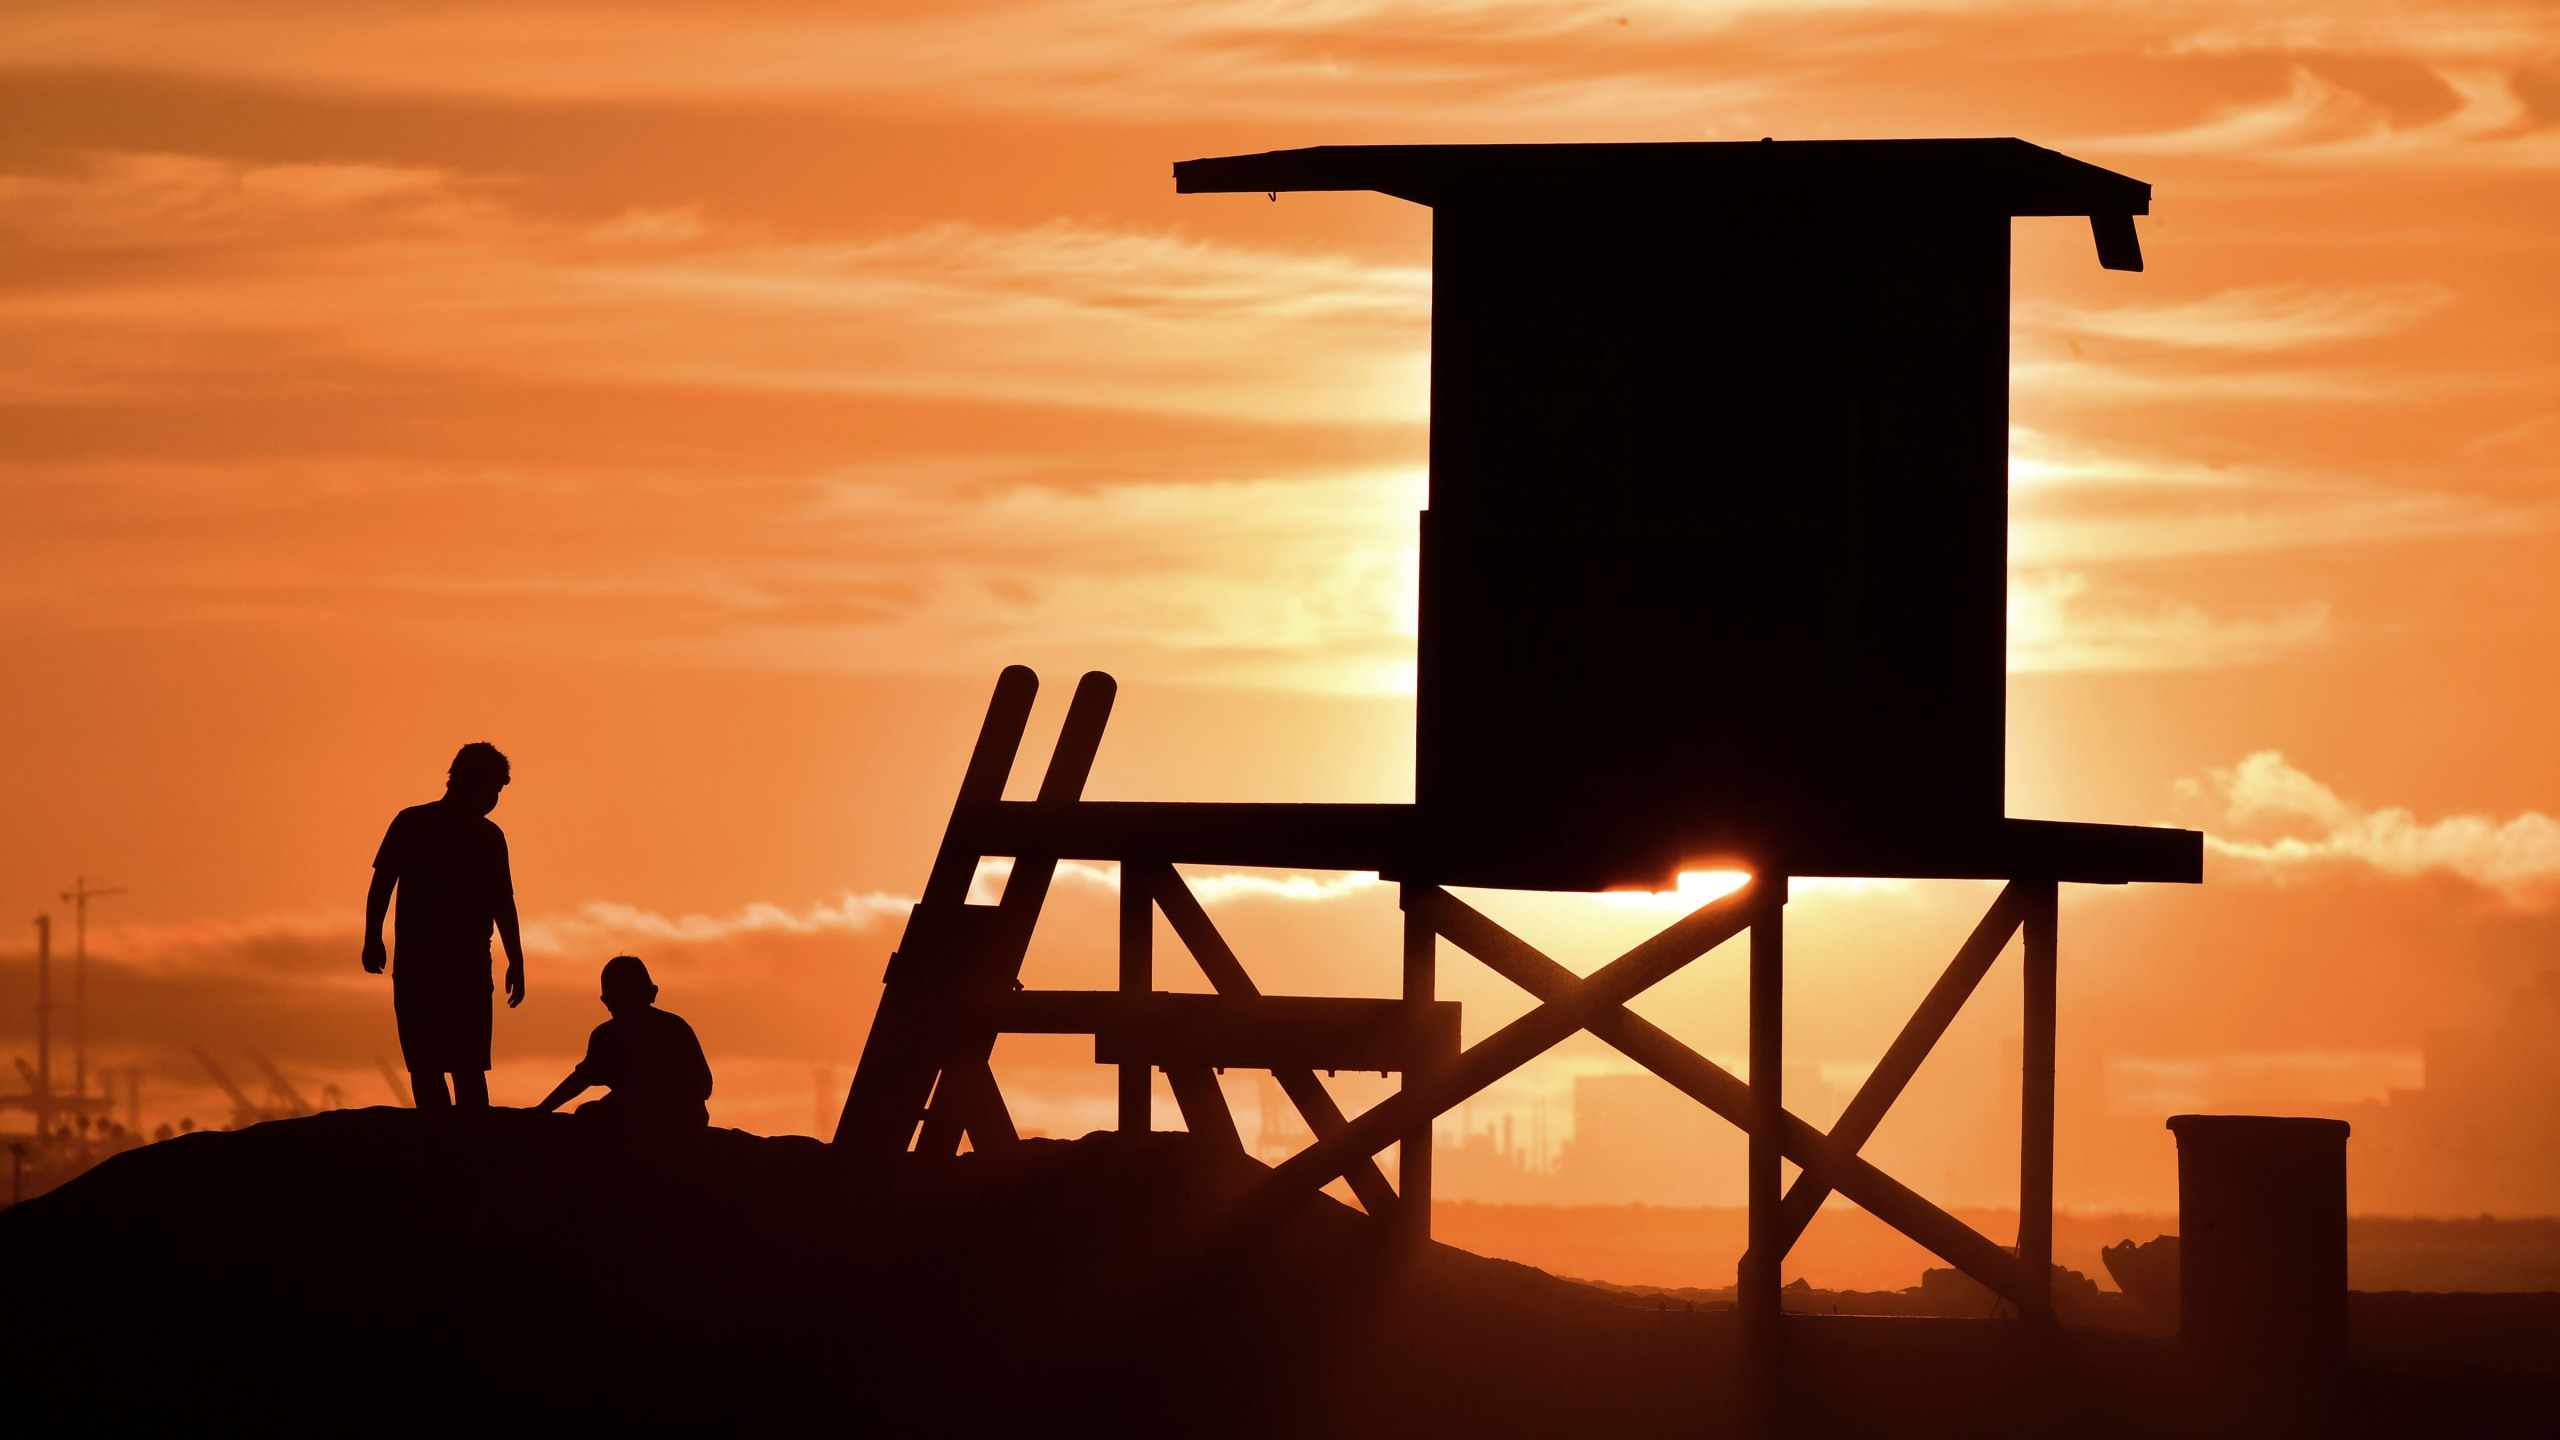 Children play beside a lifeguard tower as sunset approaches at Sunset Beach in Huntington Beach on July 21, 2018. (Frederic J. Brown/AFP via Getty Images)